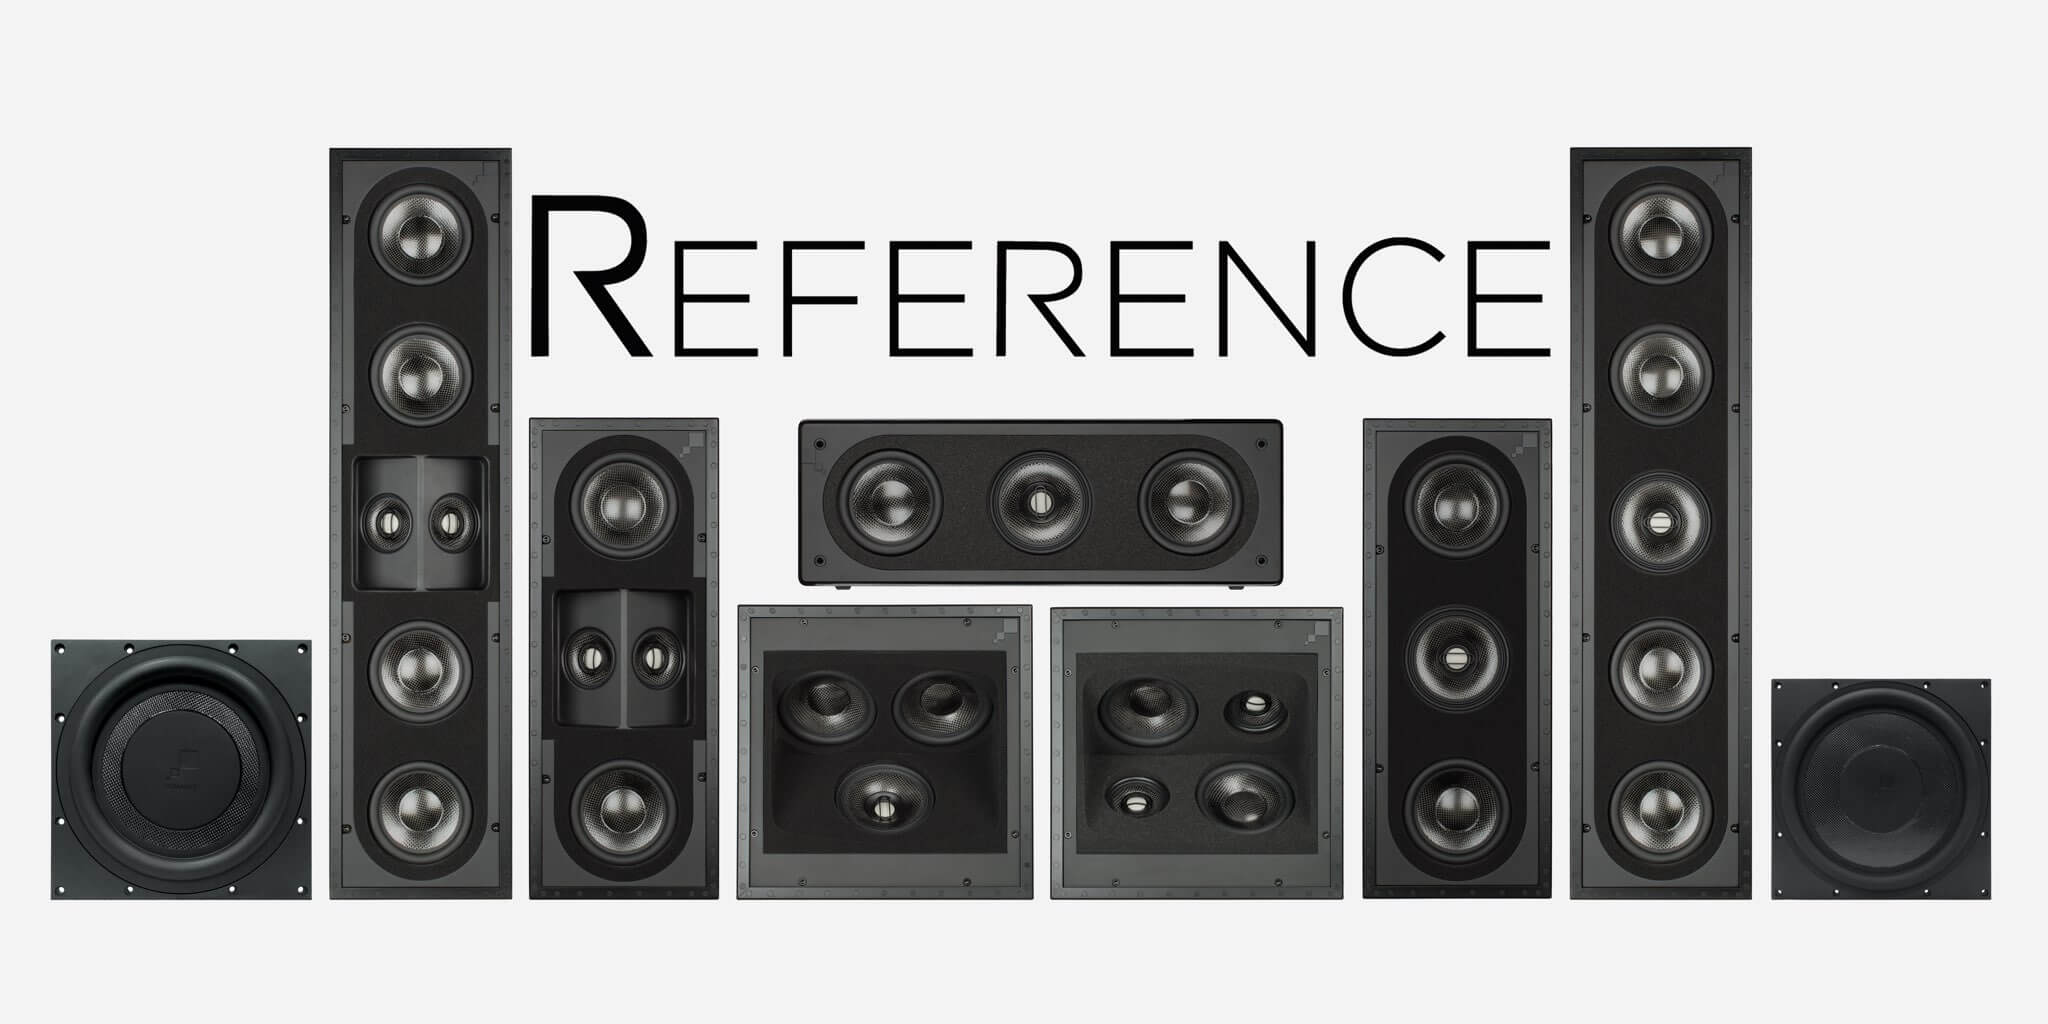 Sonance_Reference_Series_All_Products_1_JPEG_2048x1024_60%